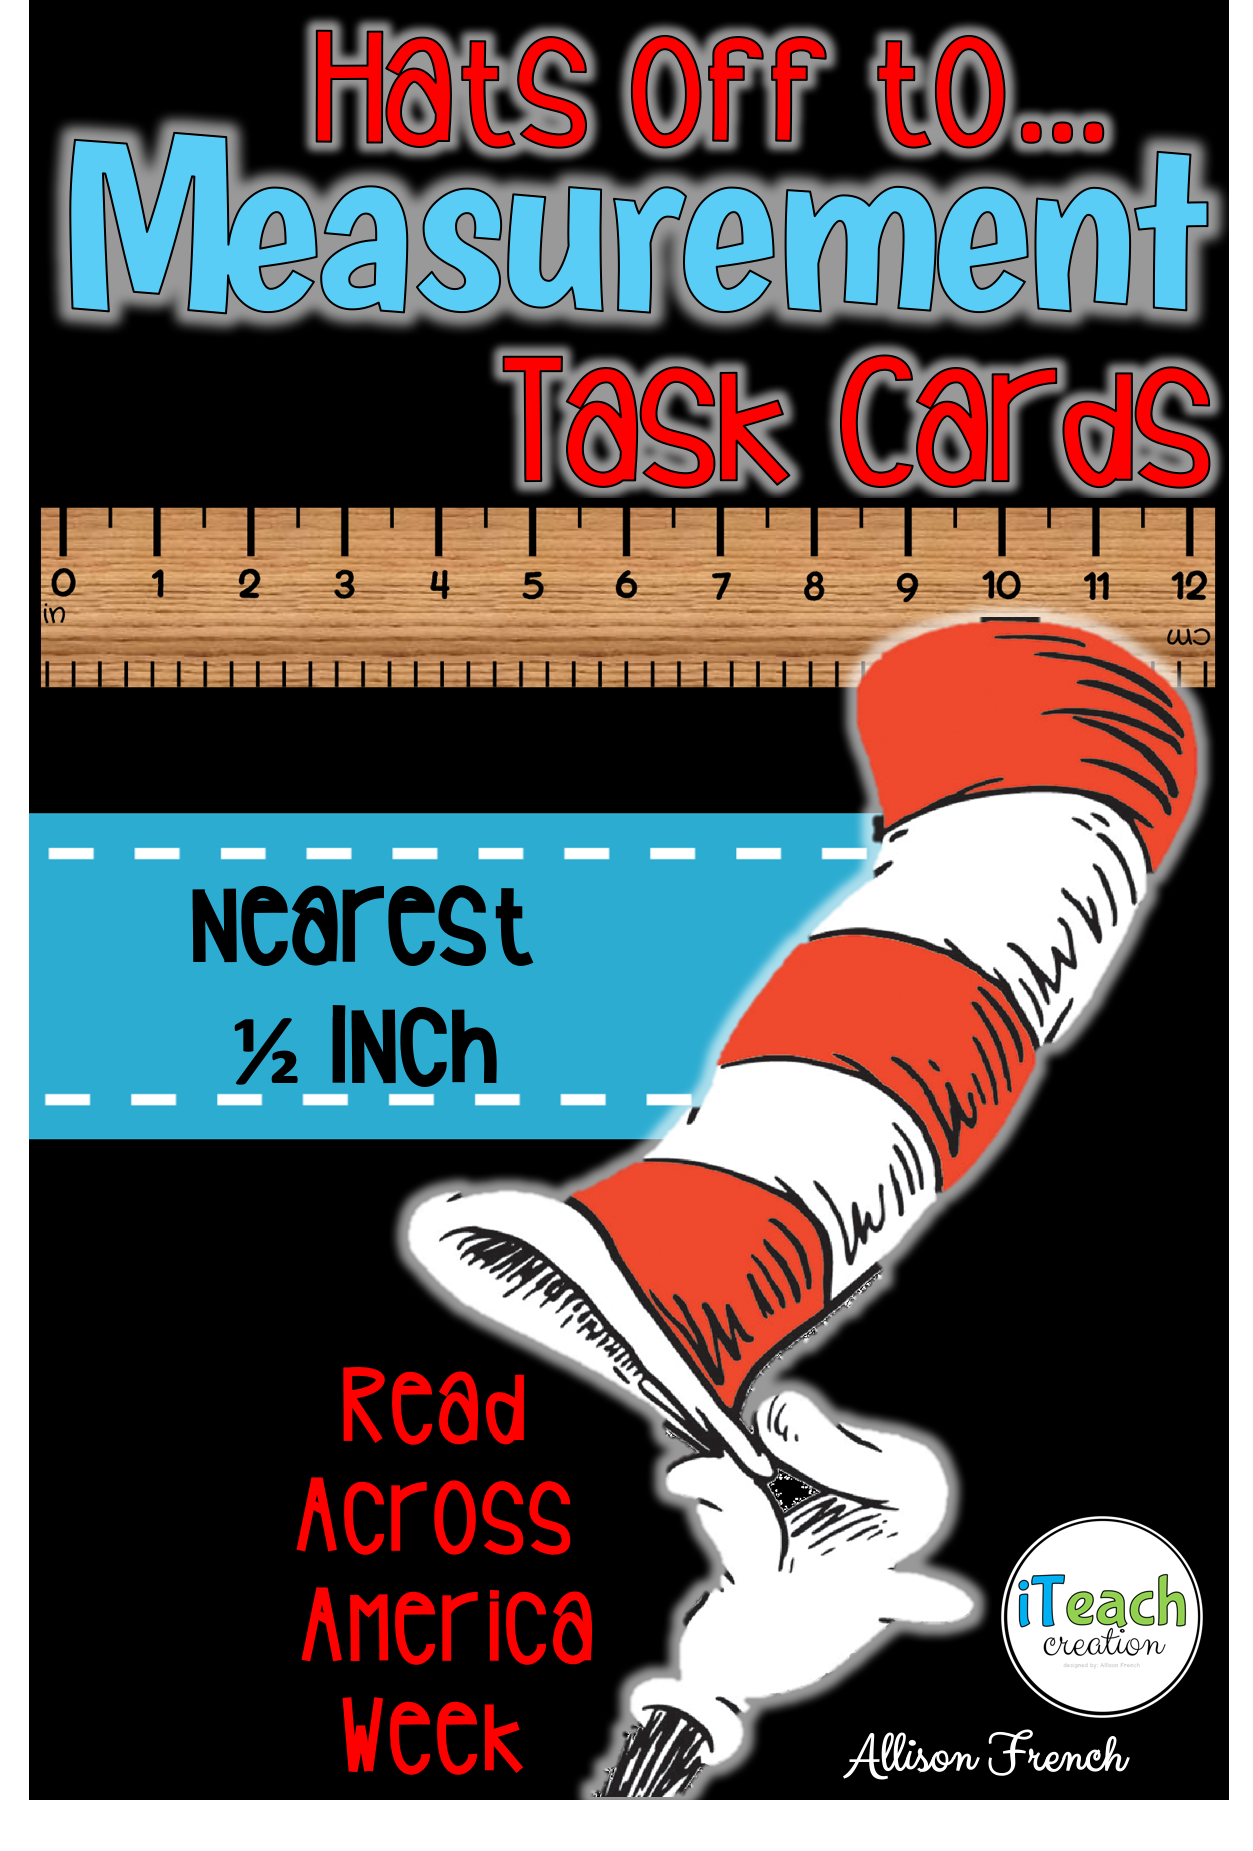 Use These Cat In The Hat Themed Measurement Task Cards